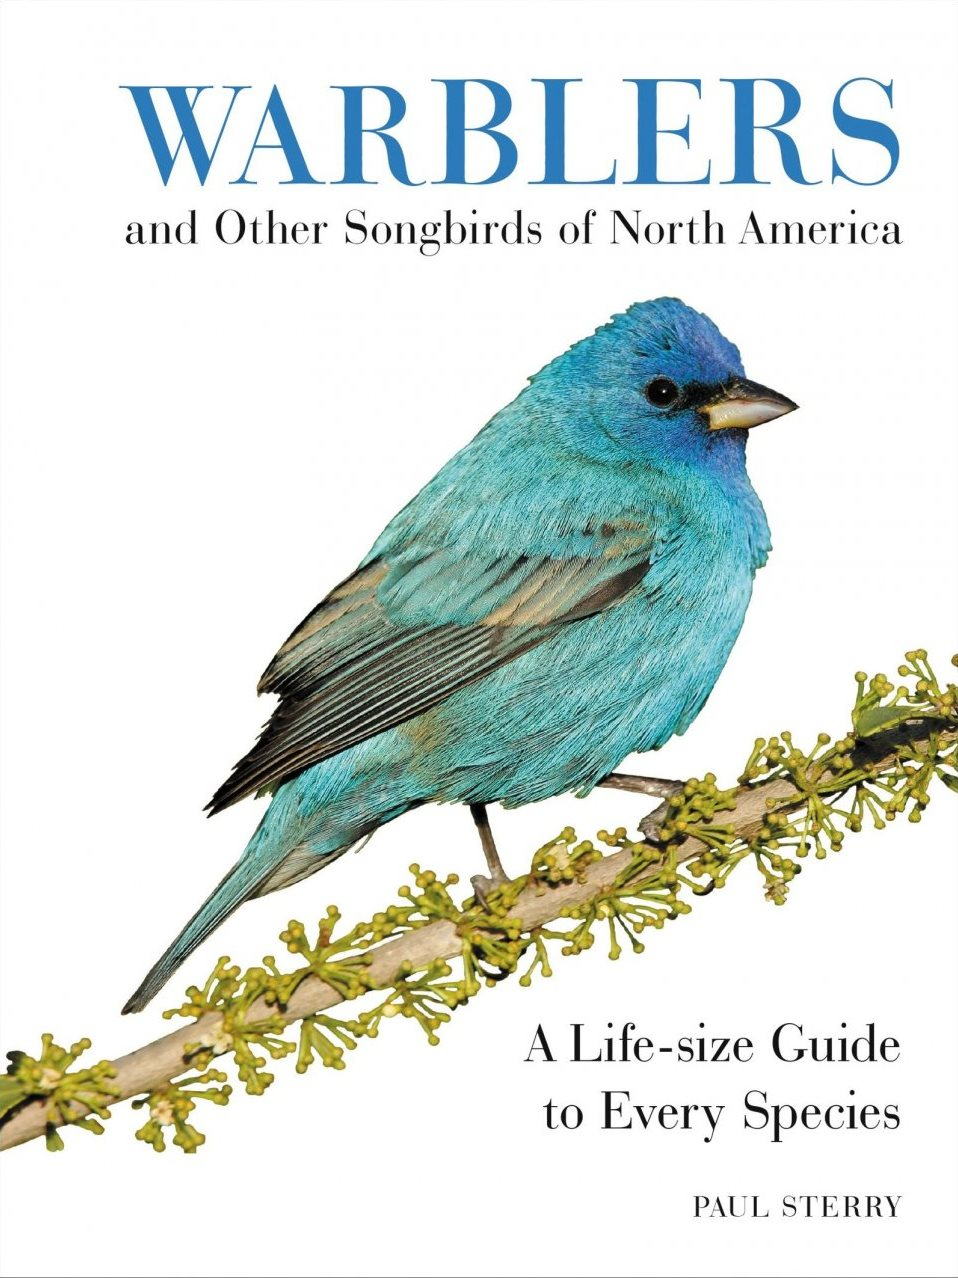 New Book: Warblers and Other Songbirds of North America: A Life-size Guide to Every Species